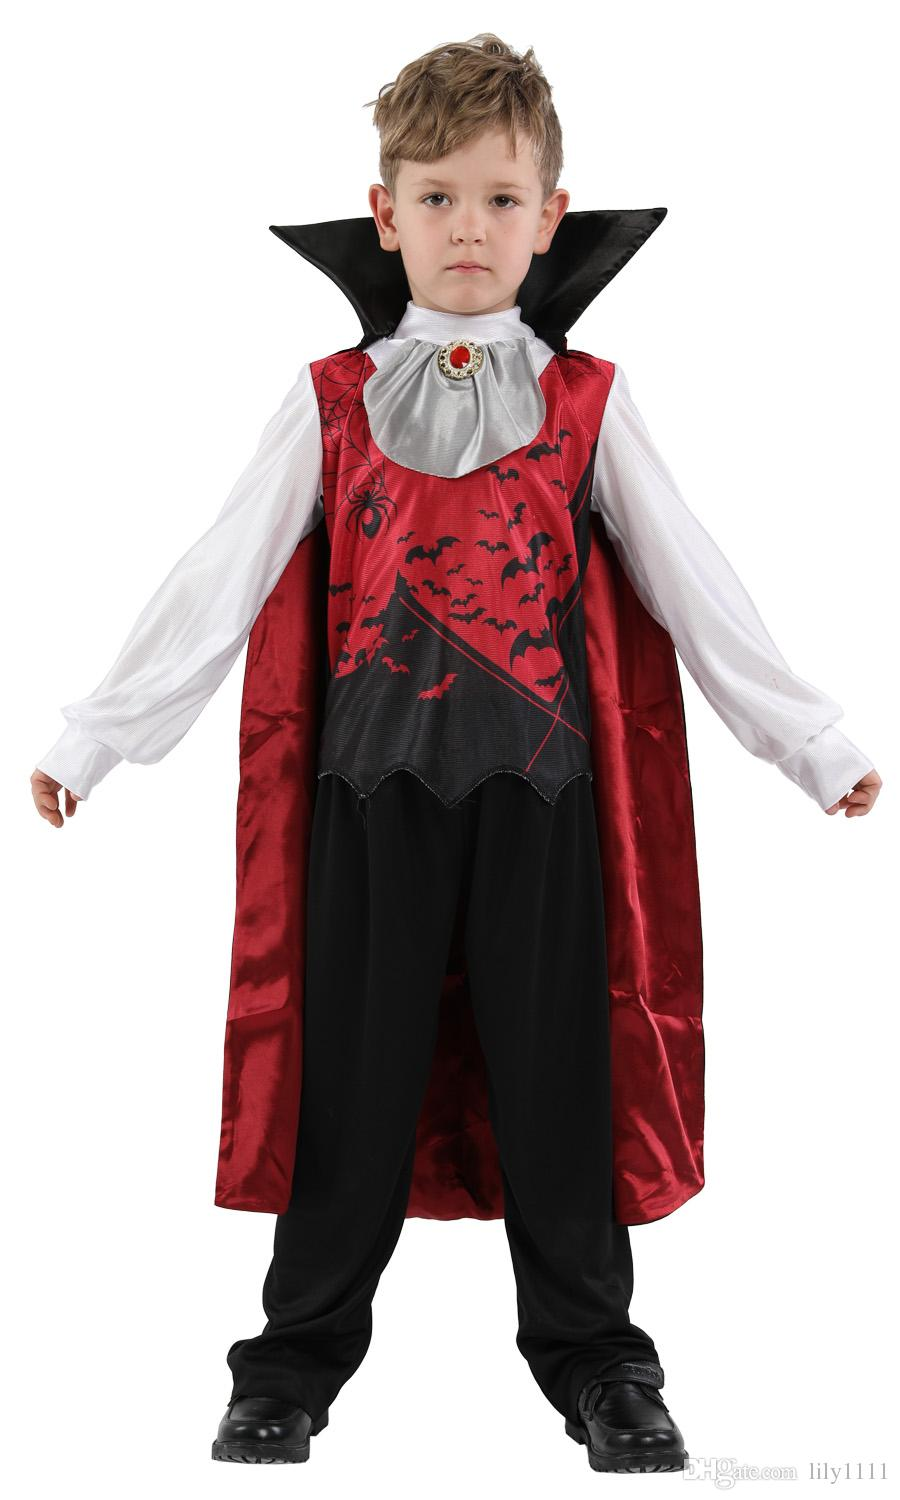 Halloween Vampire Costume Kids.Shanghai Story Halloween Vampire Costumes Children Kids Devil Demon Cosplays Carnival Purim Masquerade Role Play Party Dress Boy